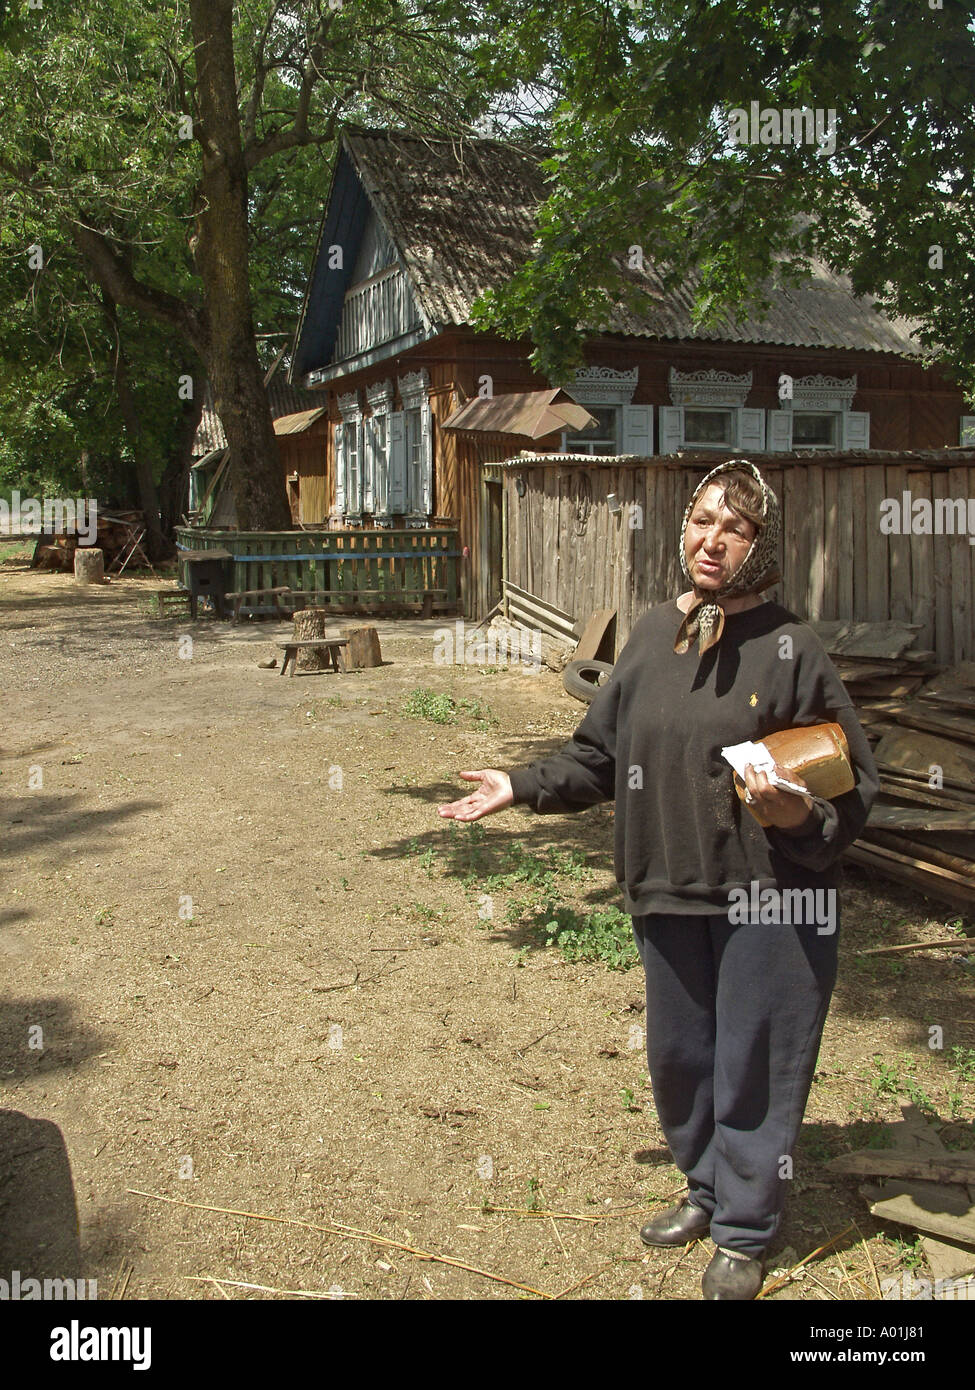 Chernobyl survivor, 58 year old woman clutching fresh loaf of bread in one arm in front of a row of houses, Chernobyl Exclusion Zone, Belarus - Stock Image